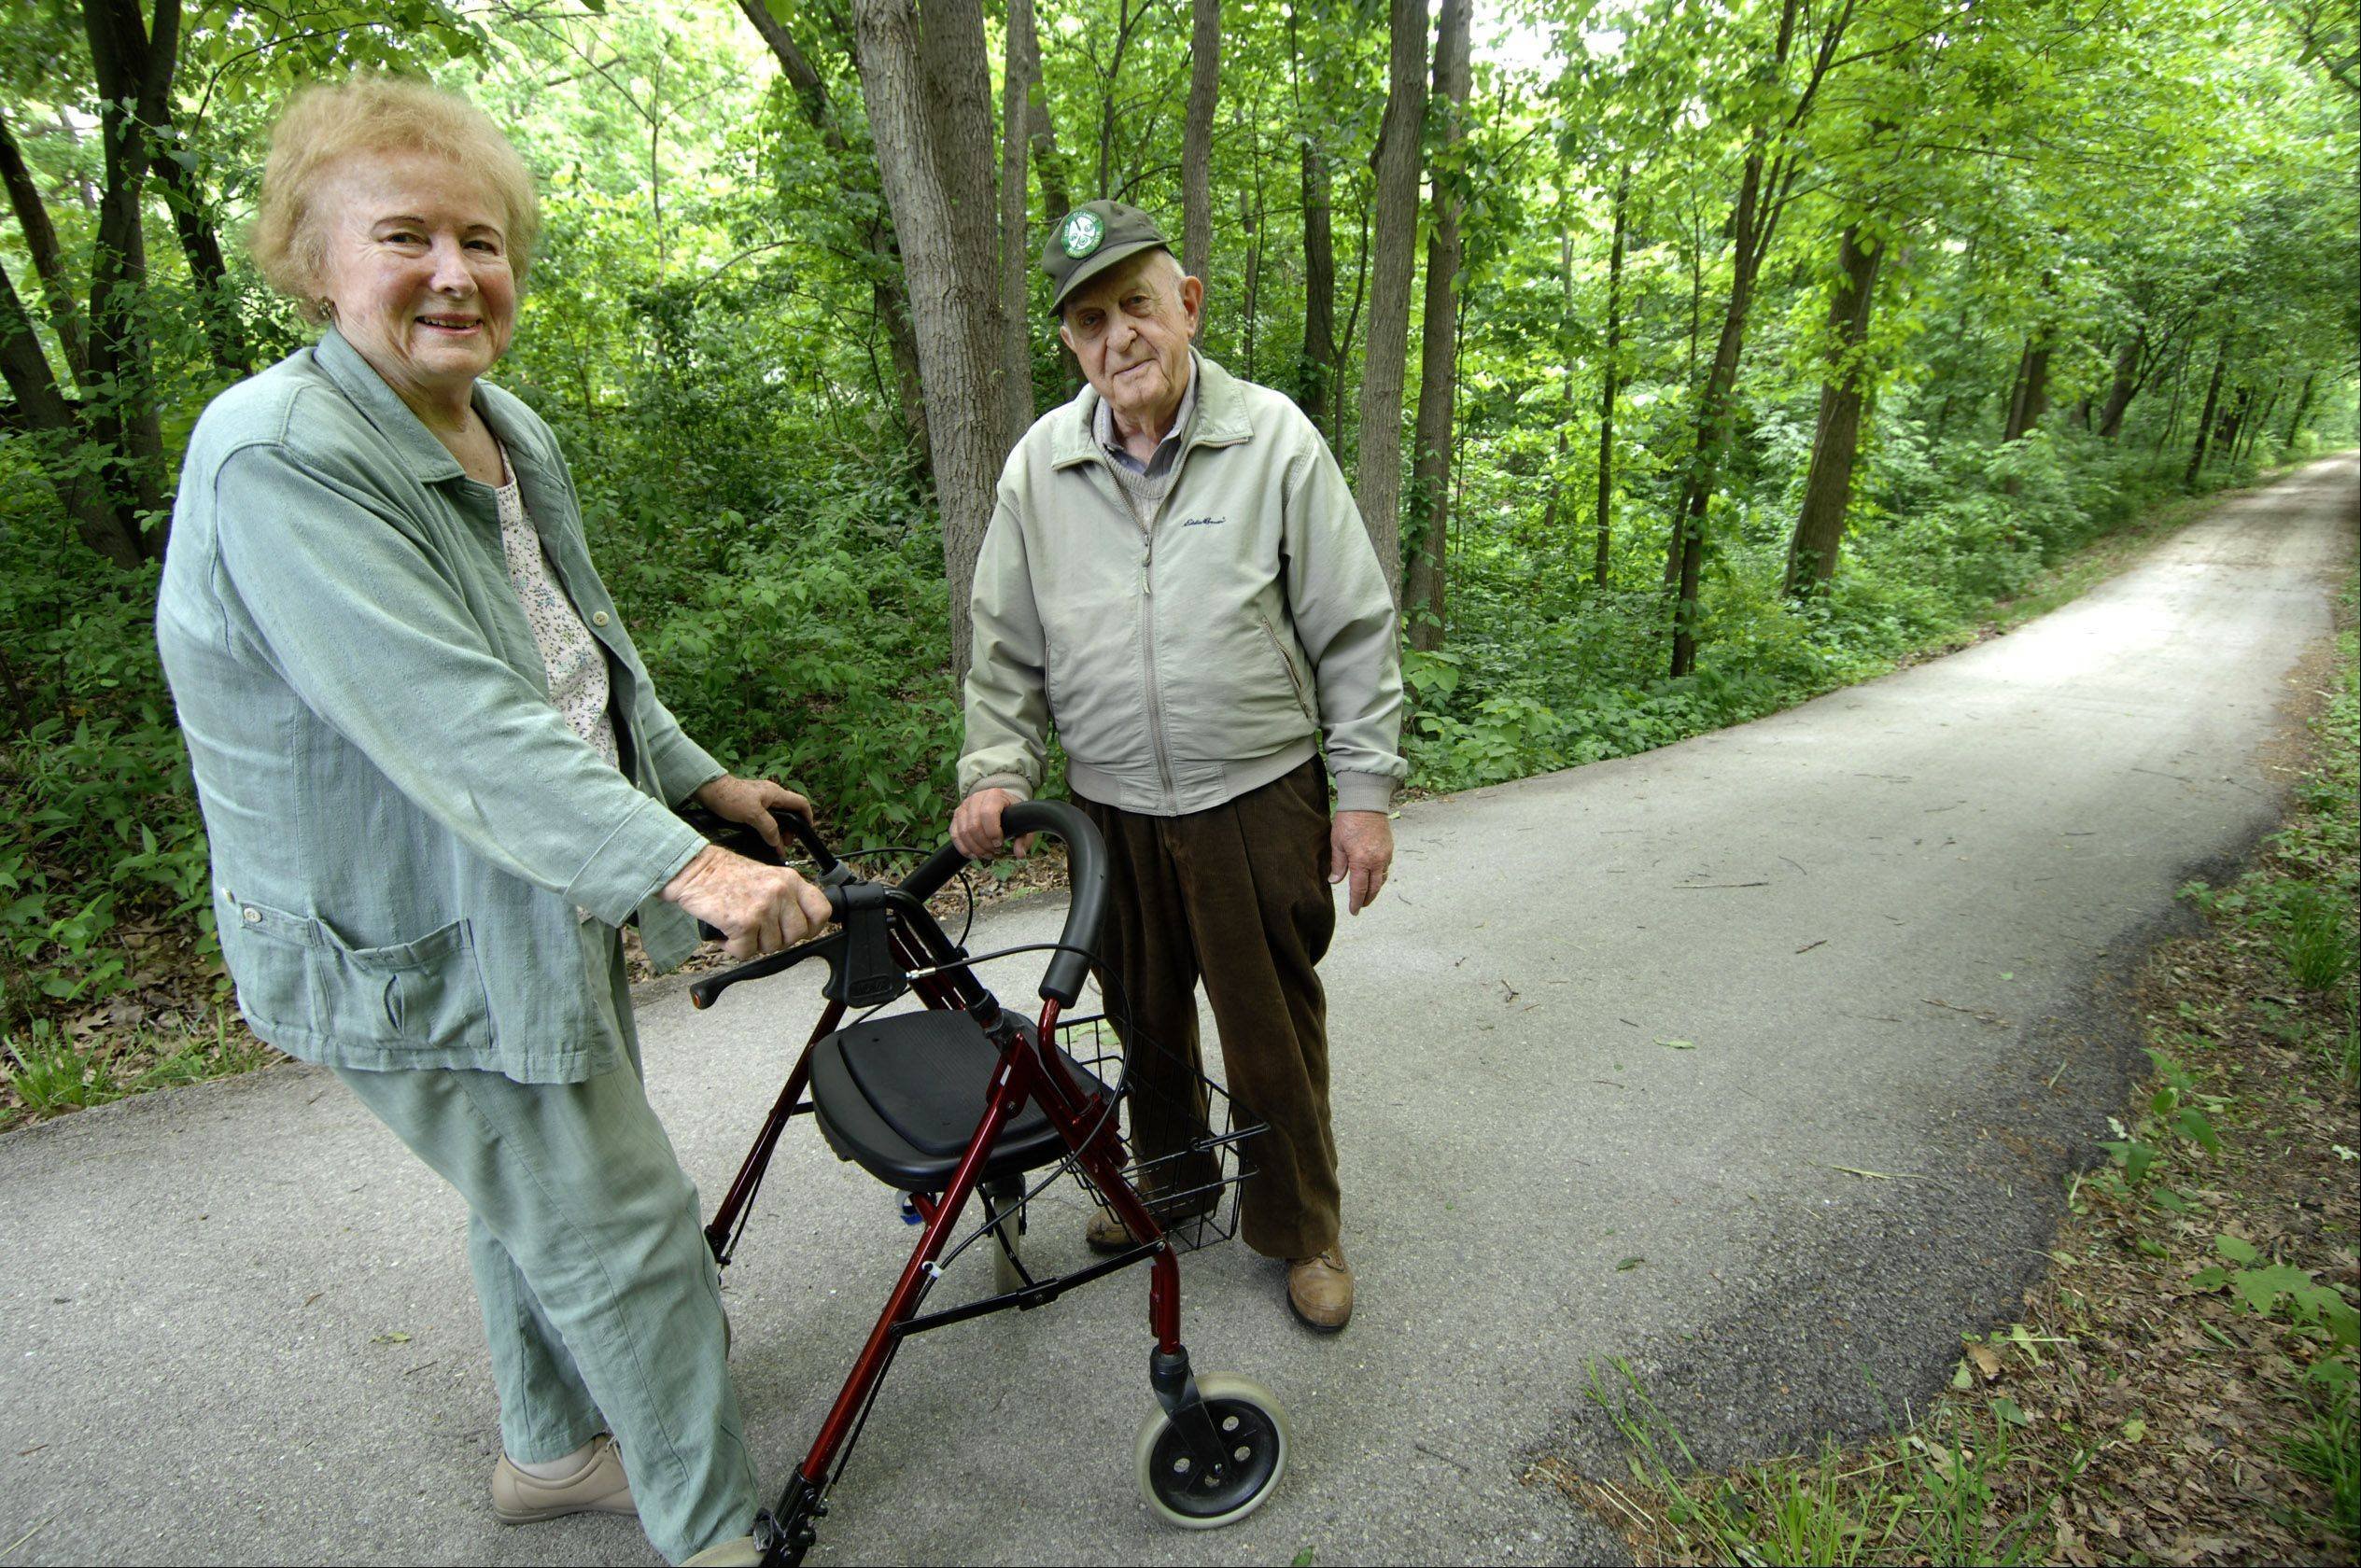 Jean Mooring and her husband, Paul ,were among the first advocates of the Illinois Prairie Path in the 1960s. Since that time, they worked to maintain a section of the path near their home in Glen Ellyn.